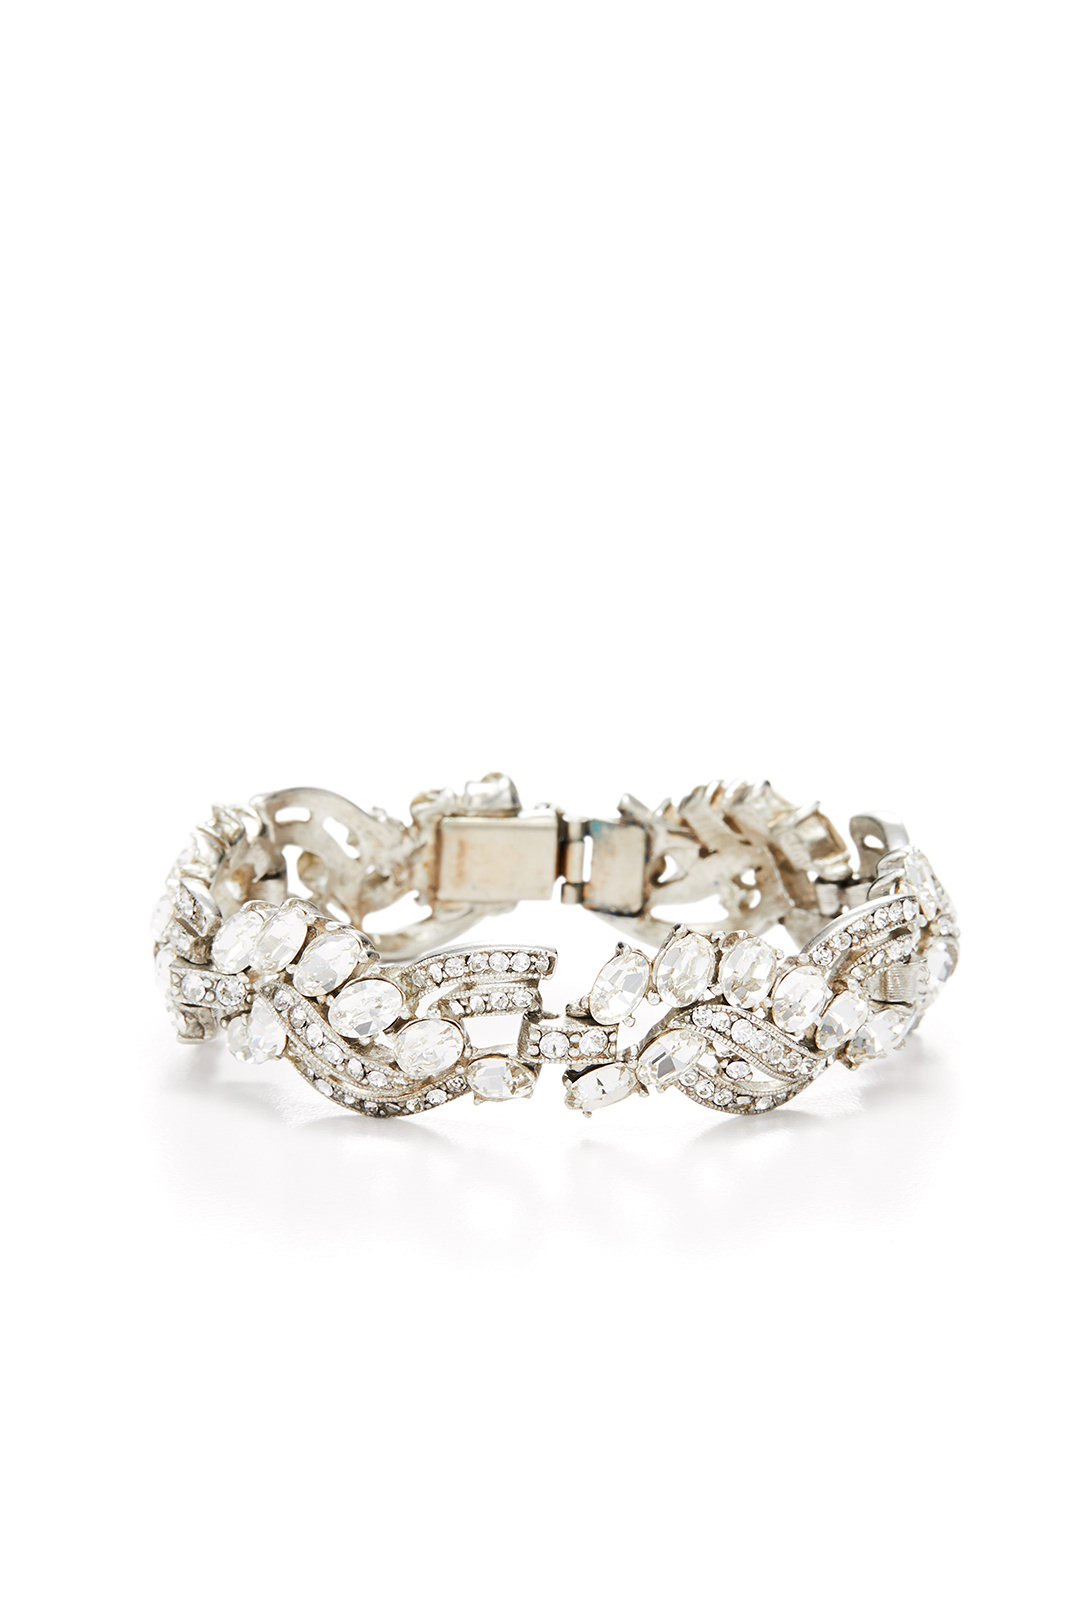 Ben-Amun Twisted Crystal Bracelet - This is stunning and I've wanted to rent this for a while but I keep forgetting…I need to get better at remembering.